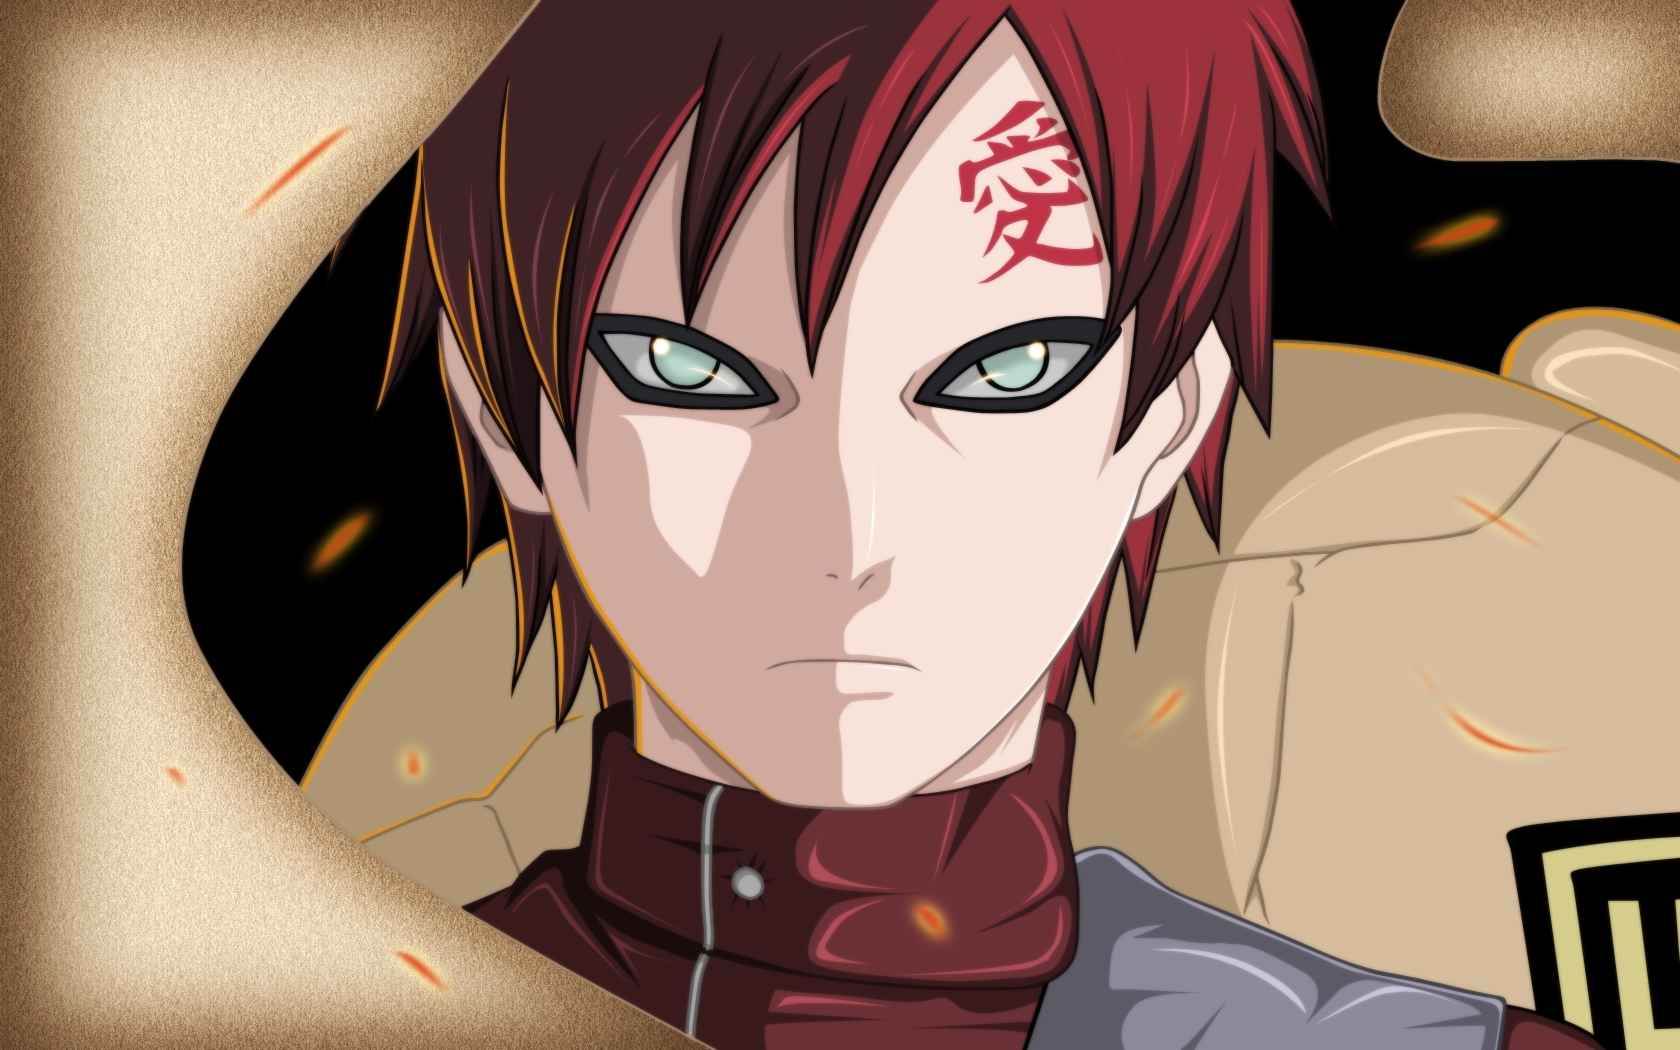 Sabaku No Gaara Wallpapers   1680x1050   821174 1680x1050